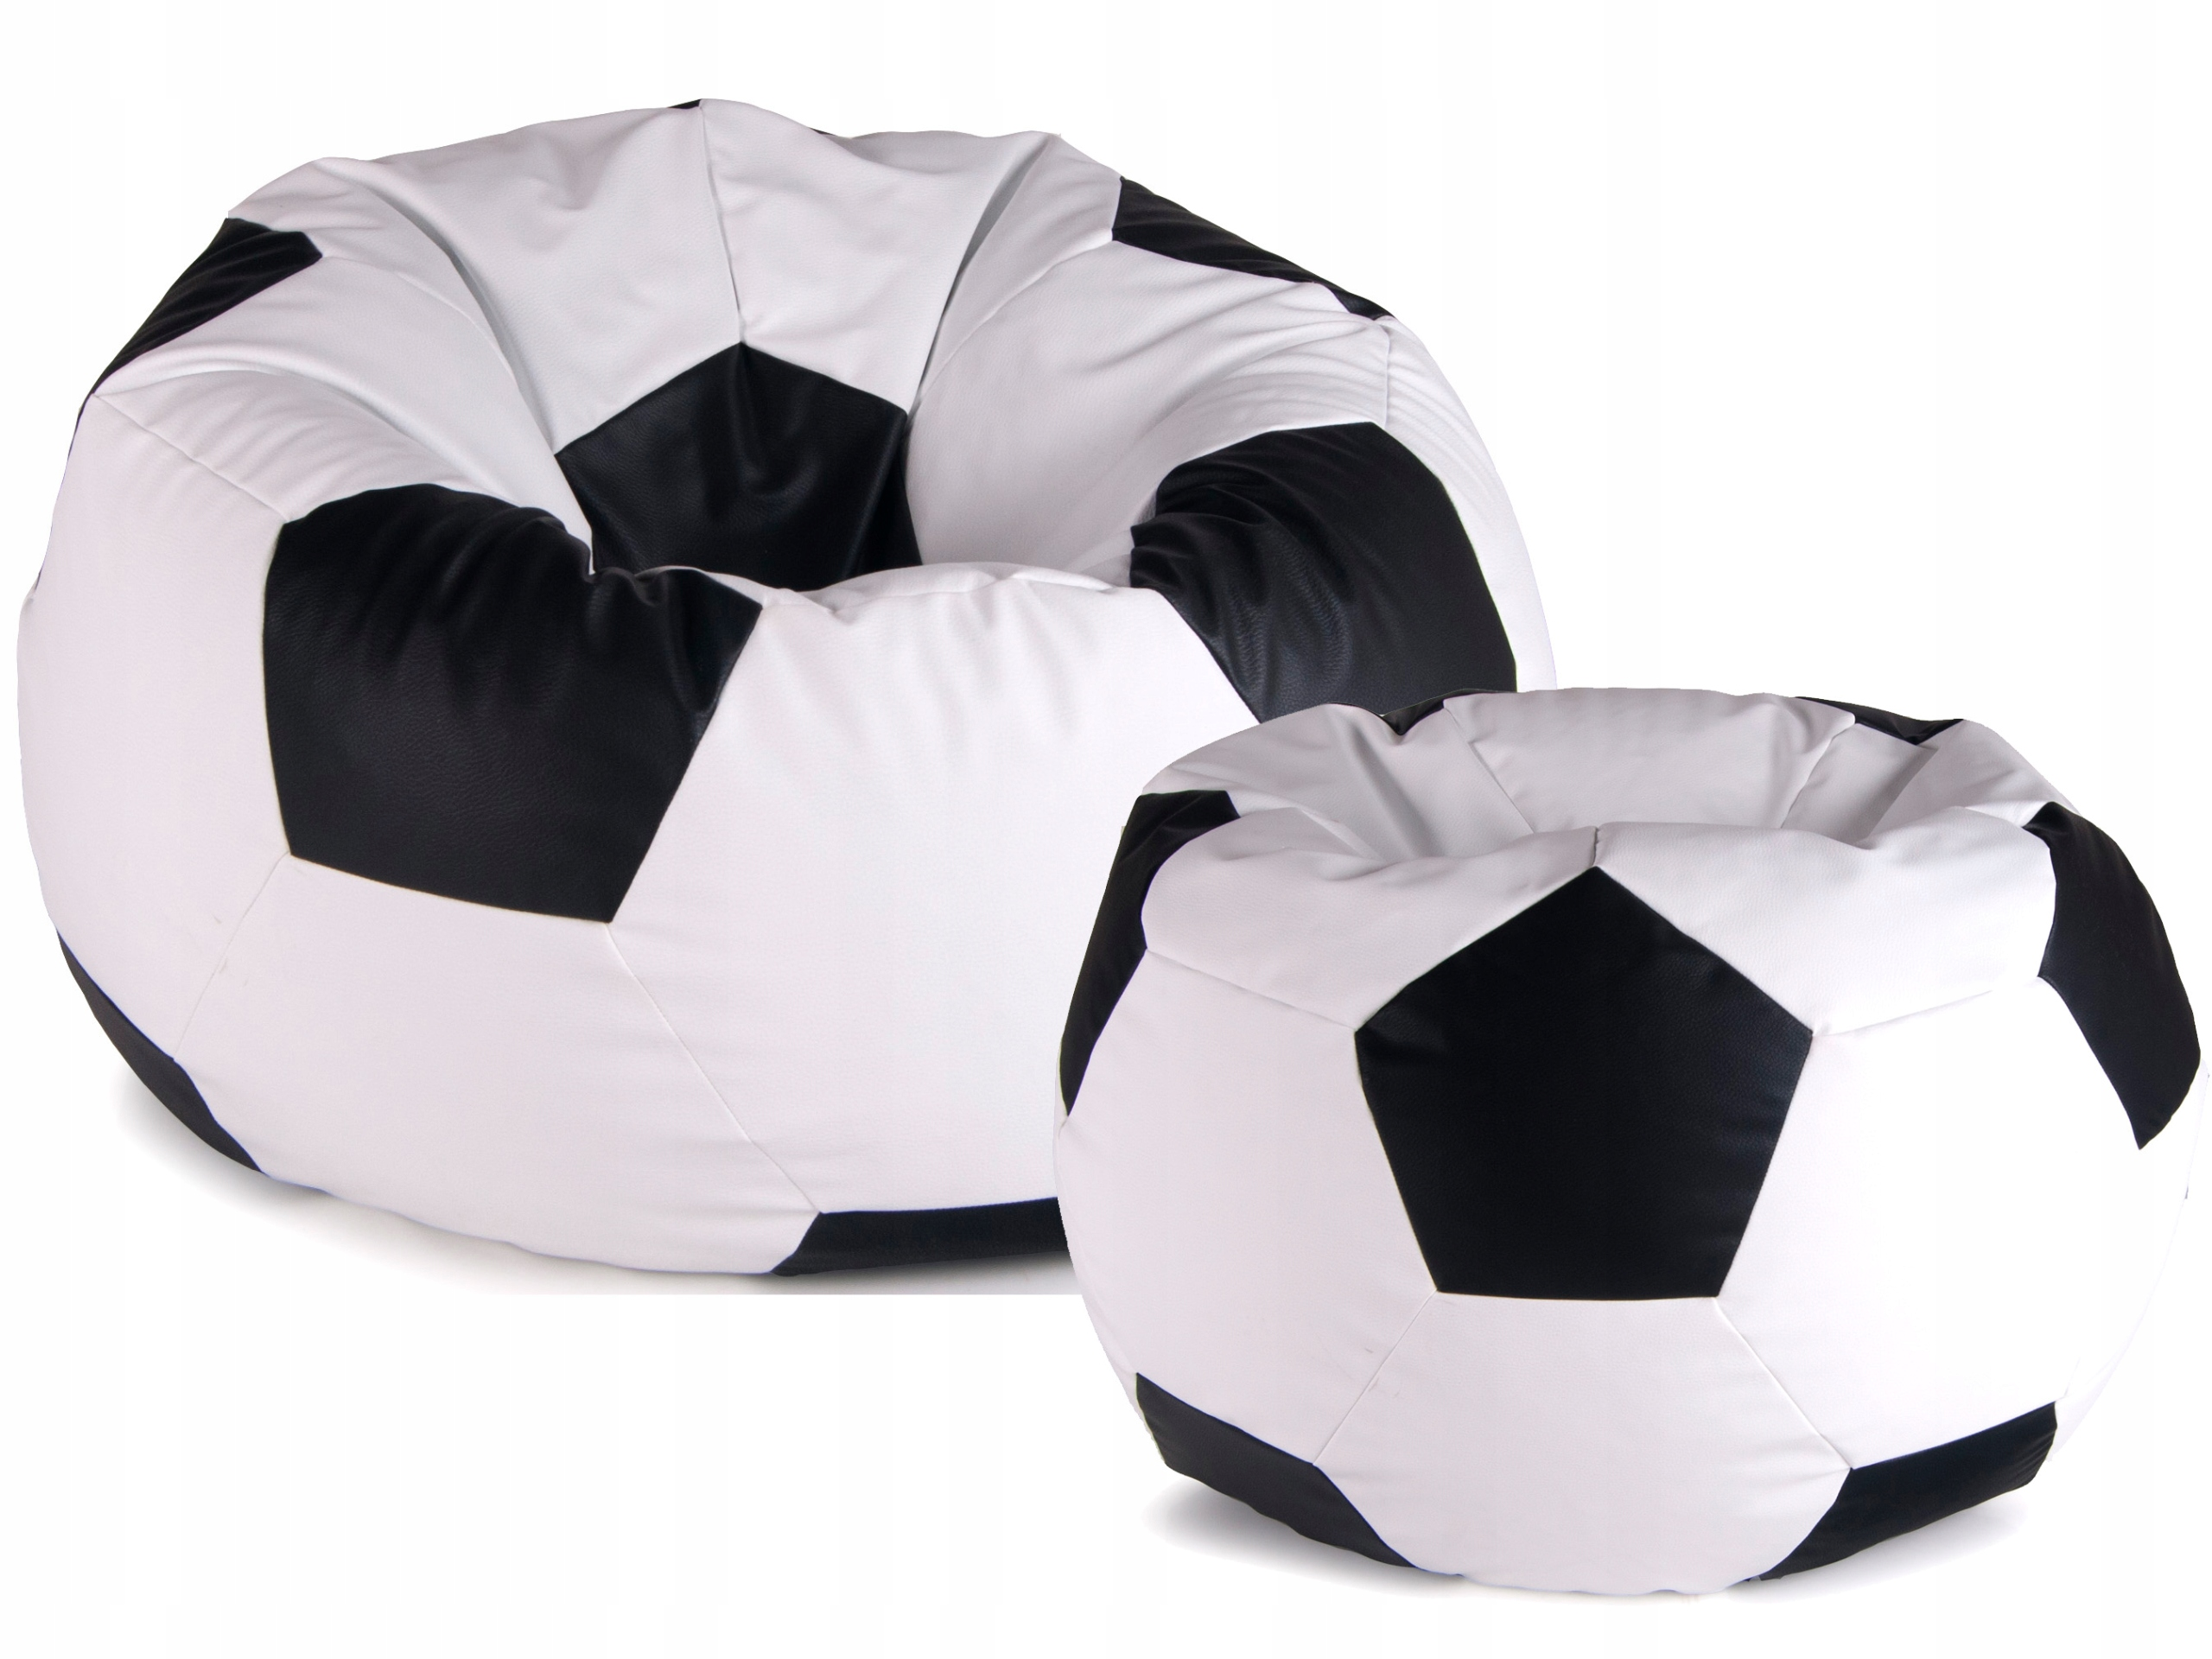 PUFA BALL XXXL PUFY BALL SET СУМКА ДЛЯ ЦЕПЕЙ XXL